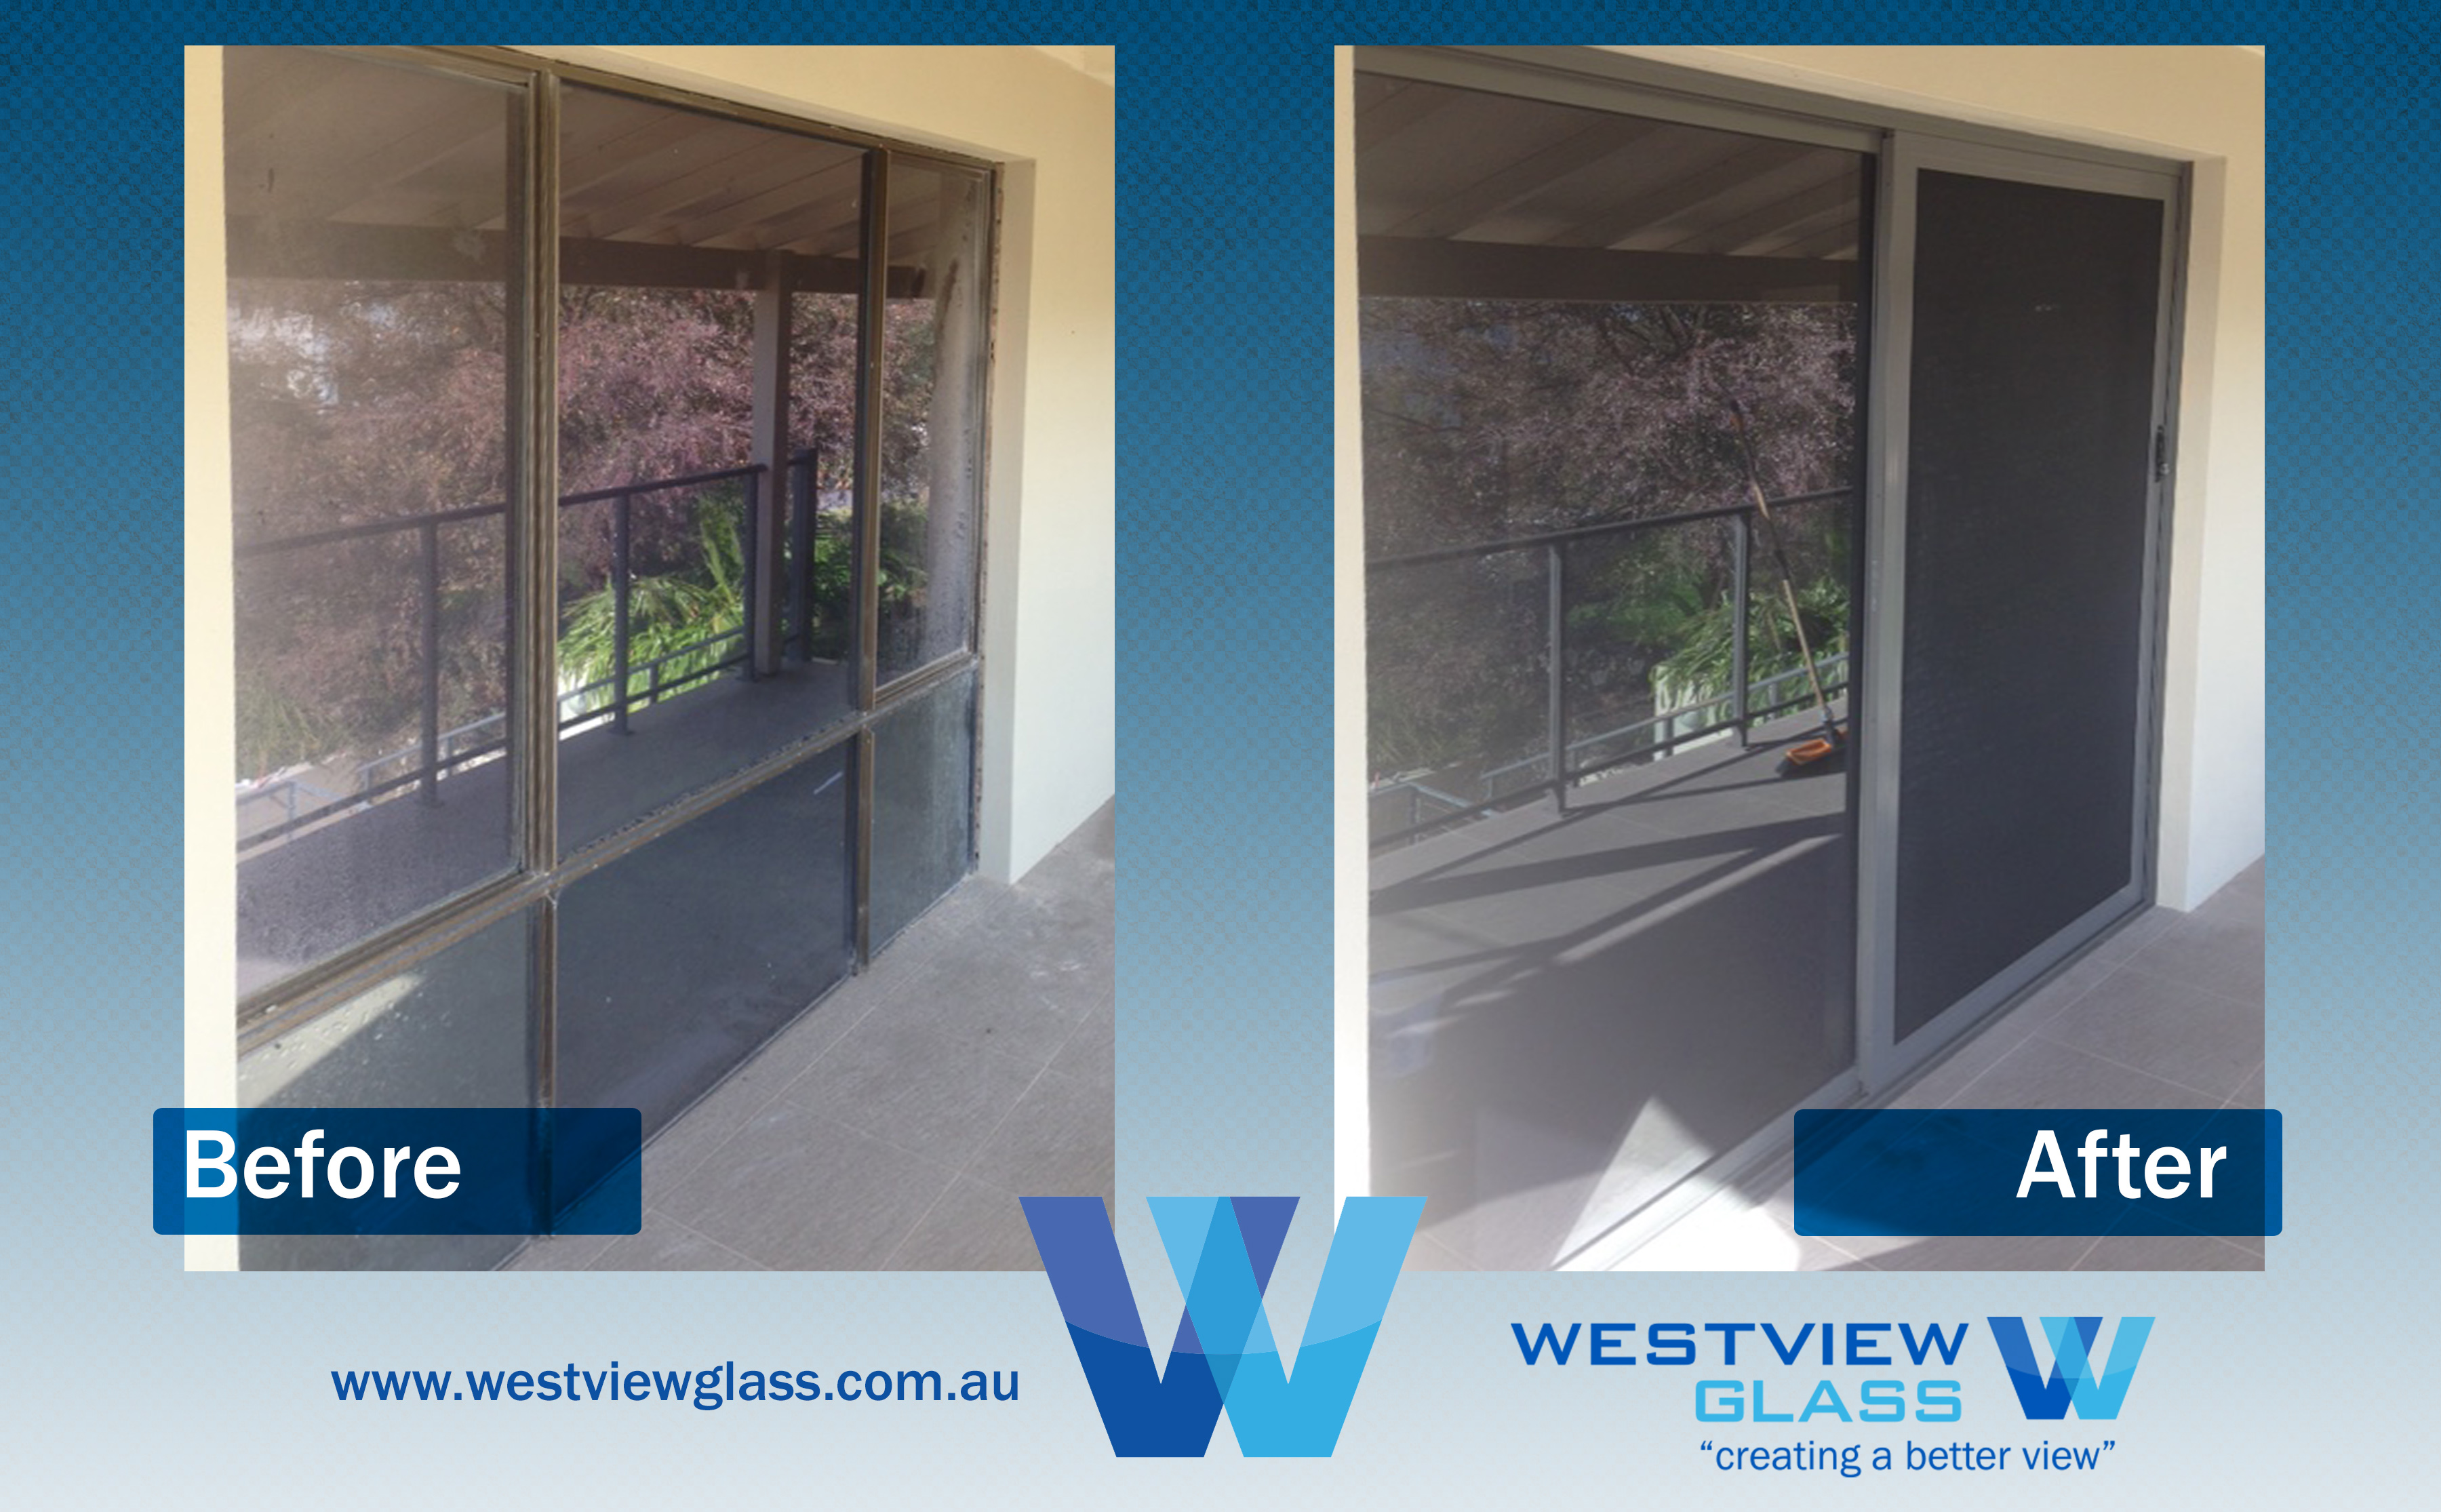 Sliding Door 6lite Window Bronze 2lite Sliding Door with Invisigard ANM - Aluminium Door Gallery – Before & After